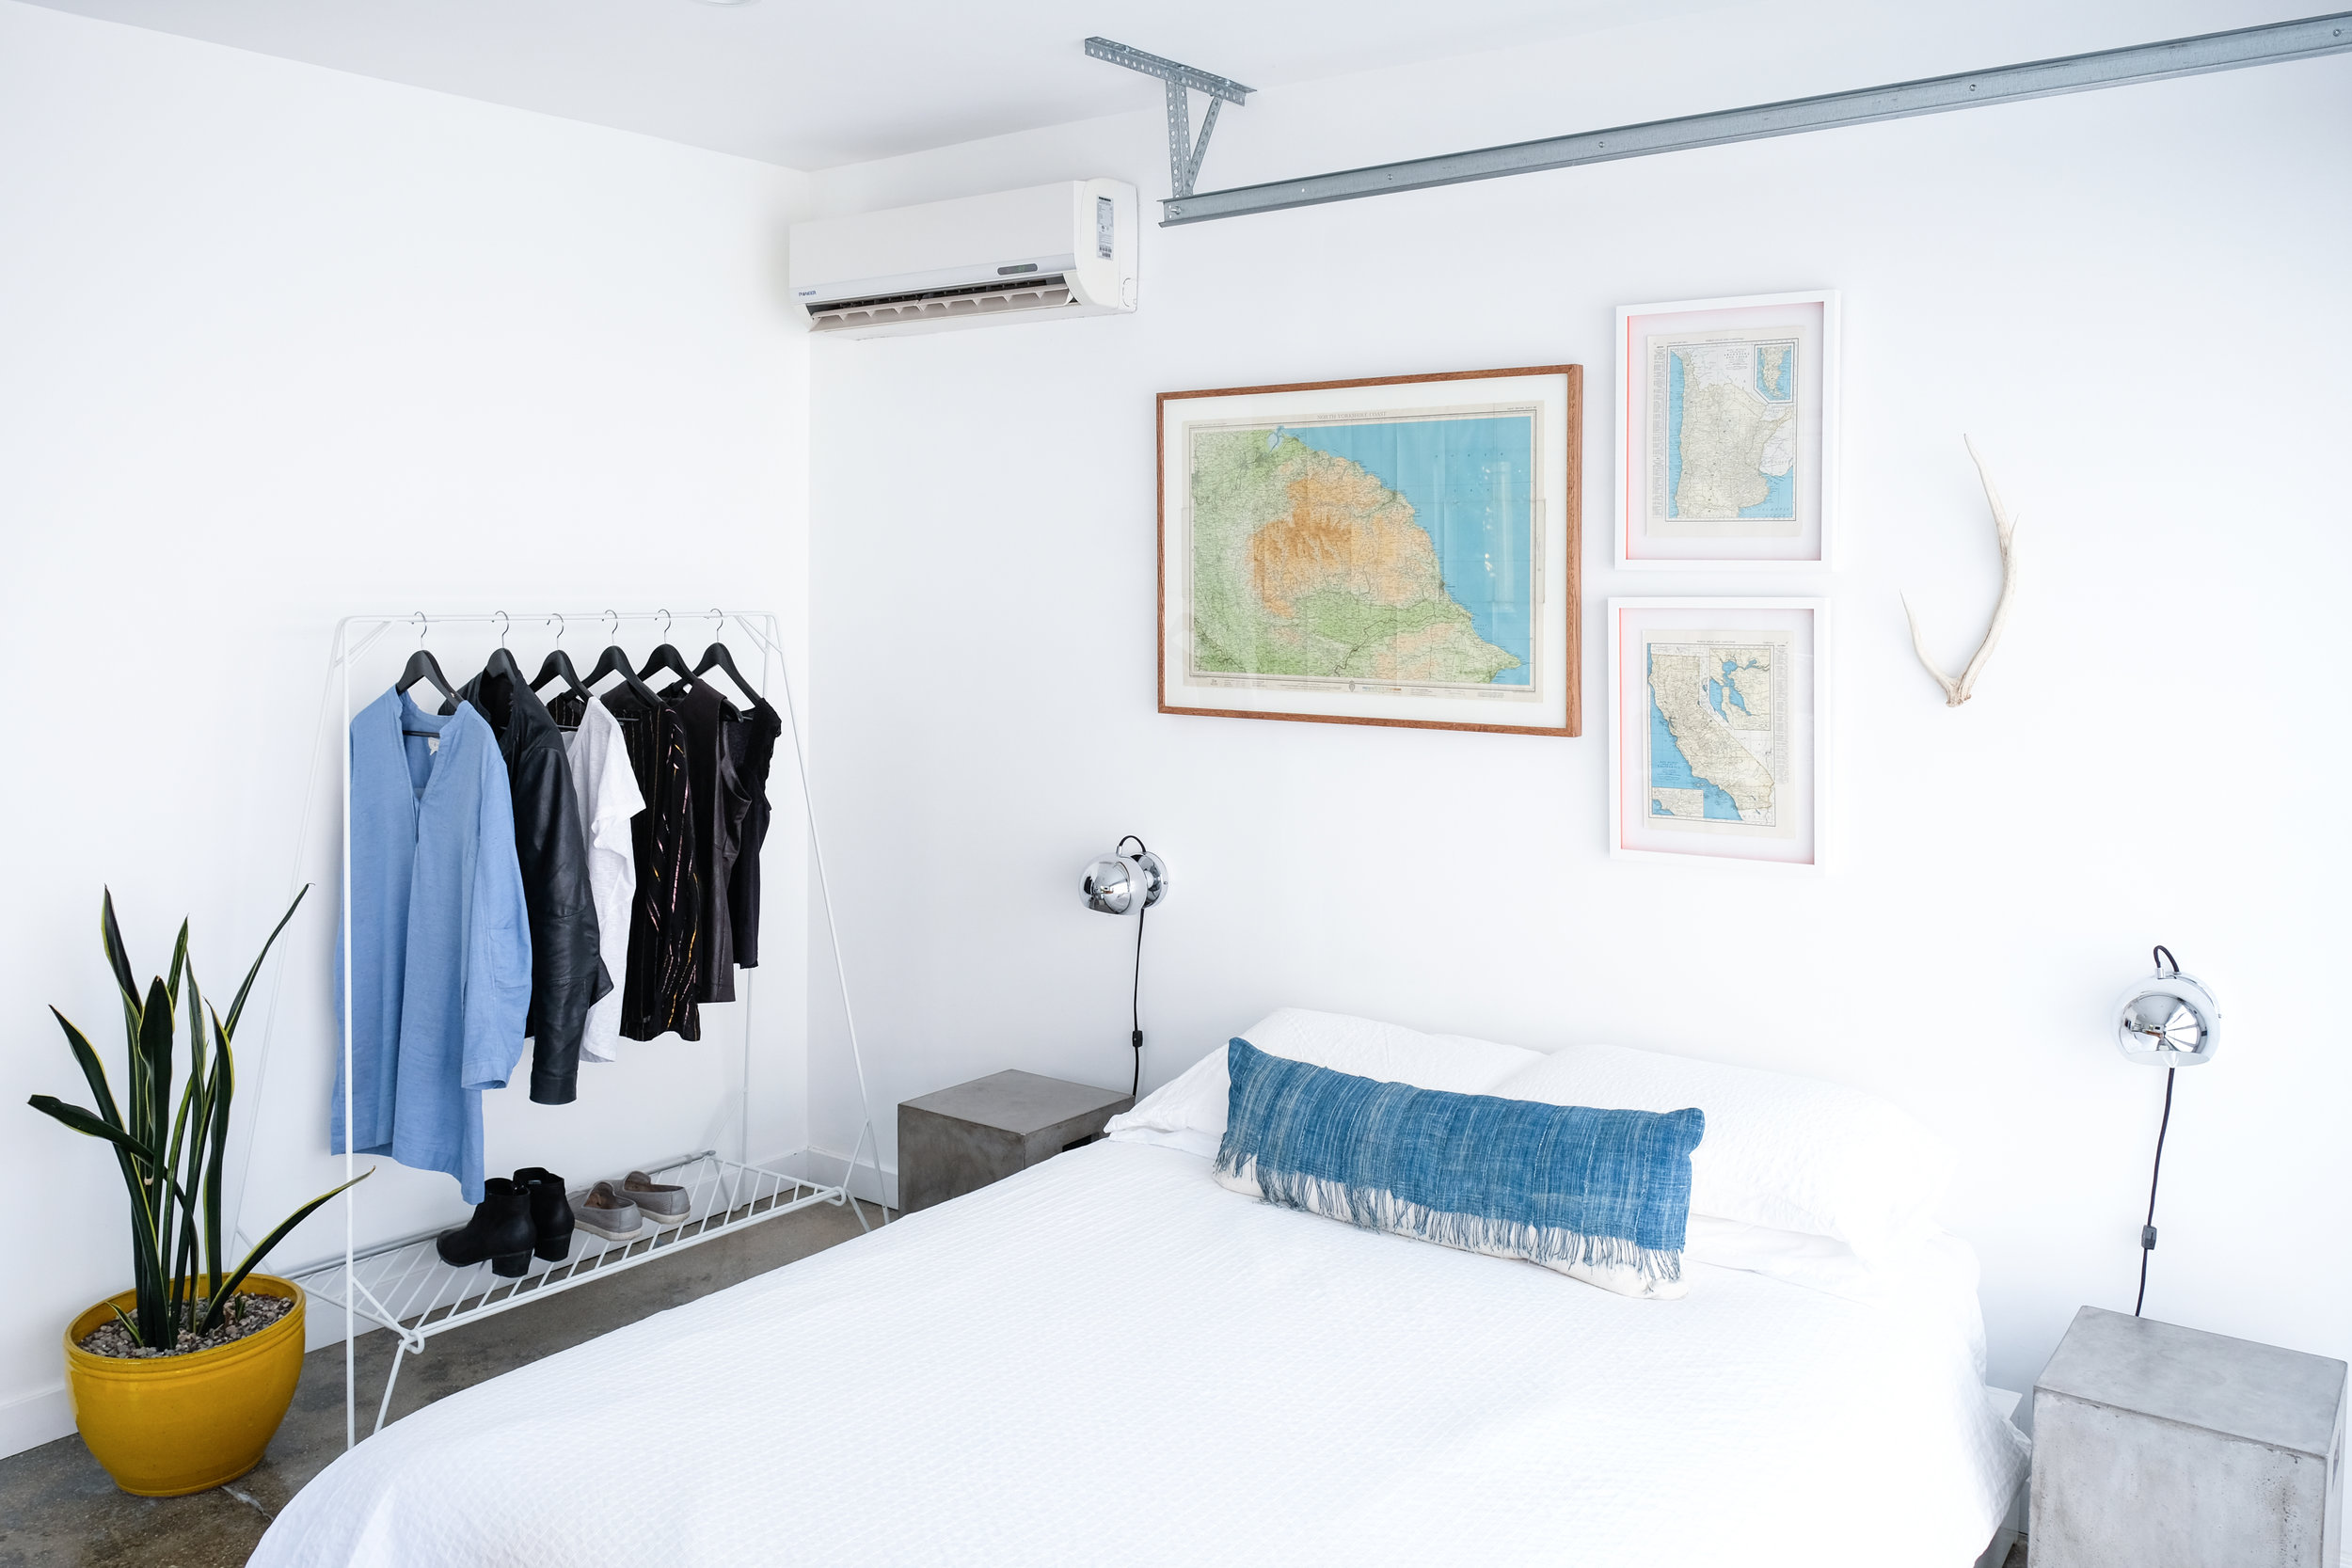 I'd want to try open clothes storage like this. I usually wear mostly black and Jeff was surprised to see blue in my vacation wardrobe!